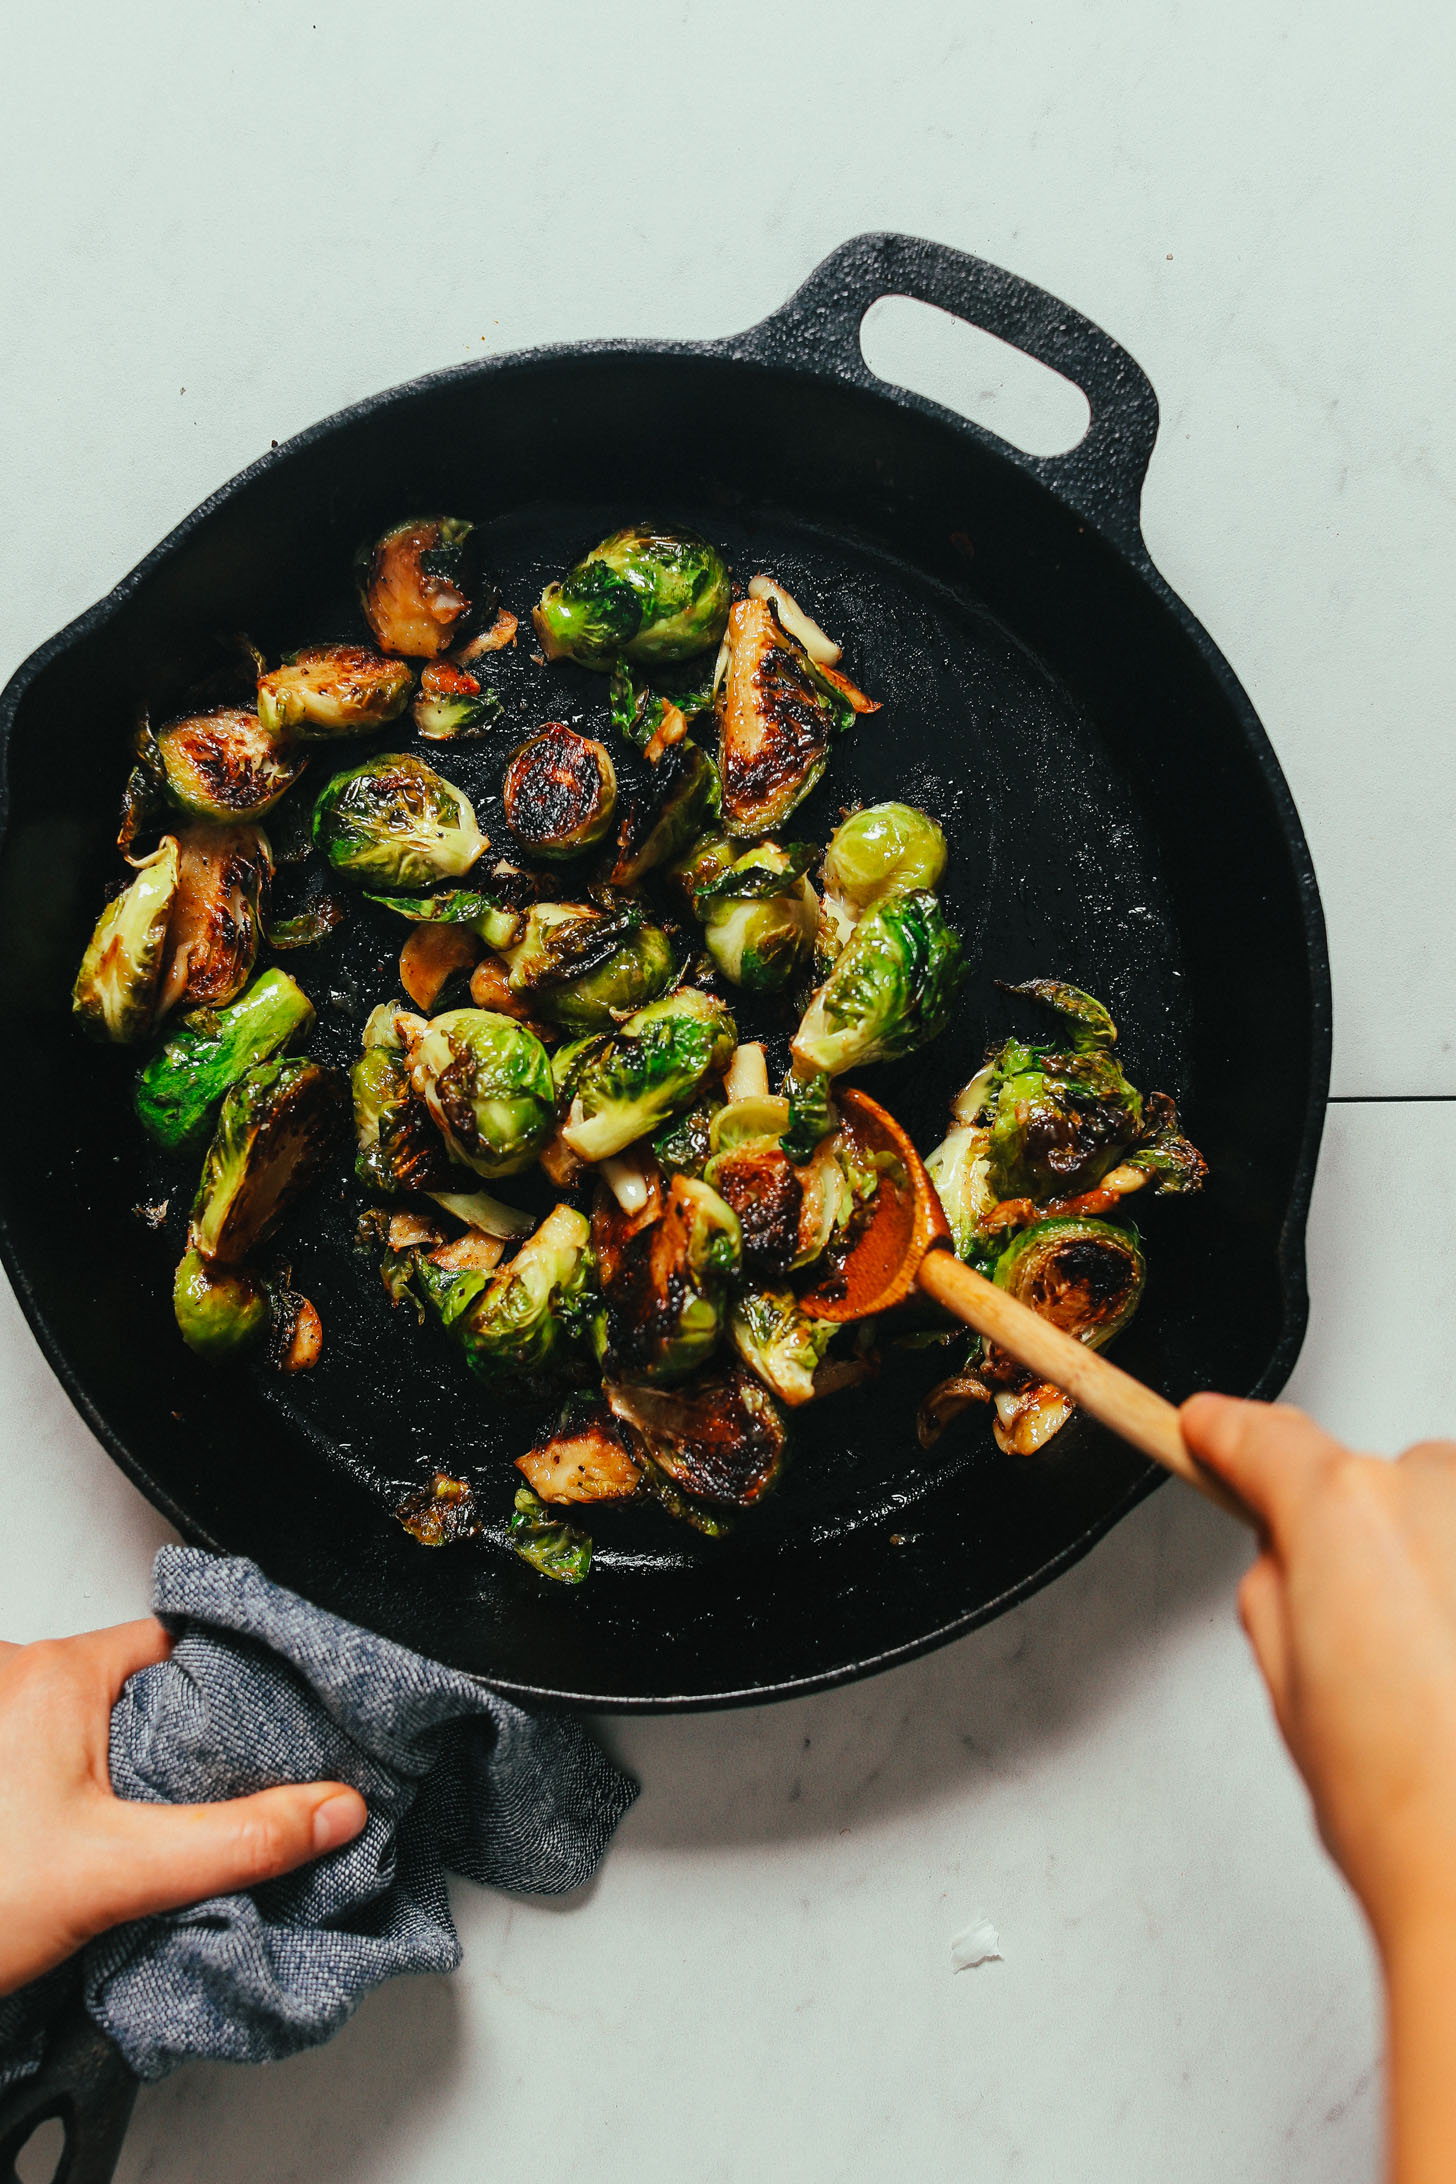 Stirring a pan of crispy Roasted Brussels Sprouts made with a miso glaze